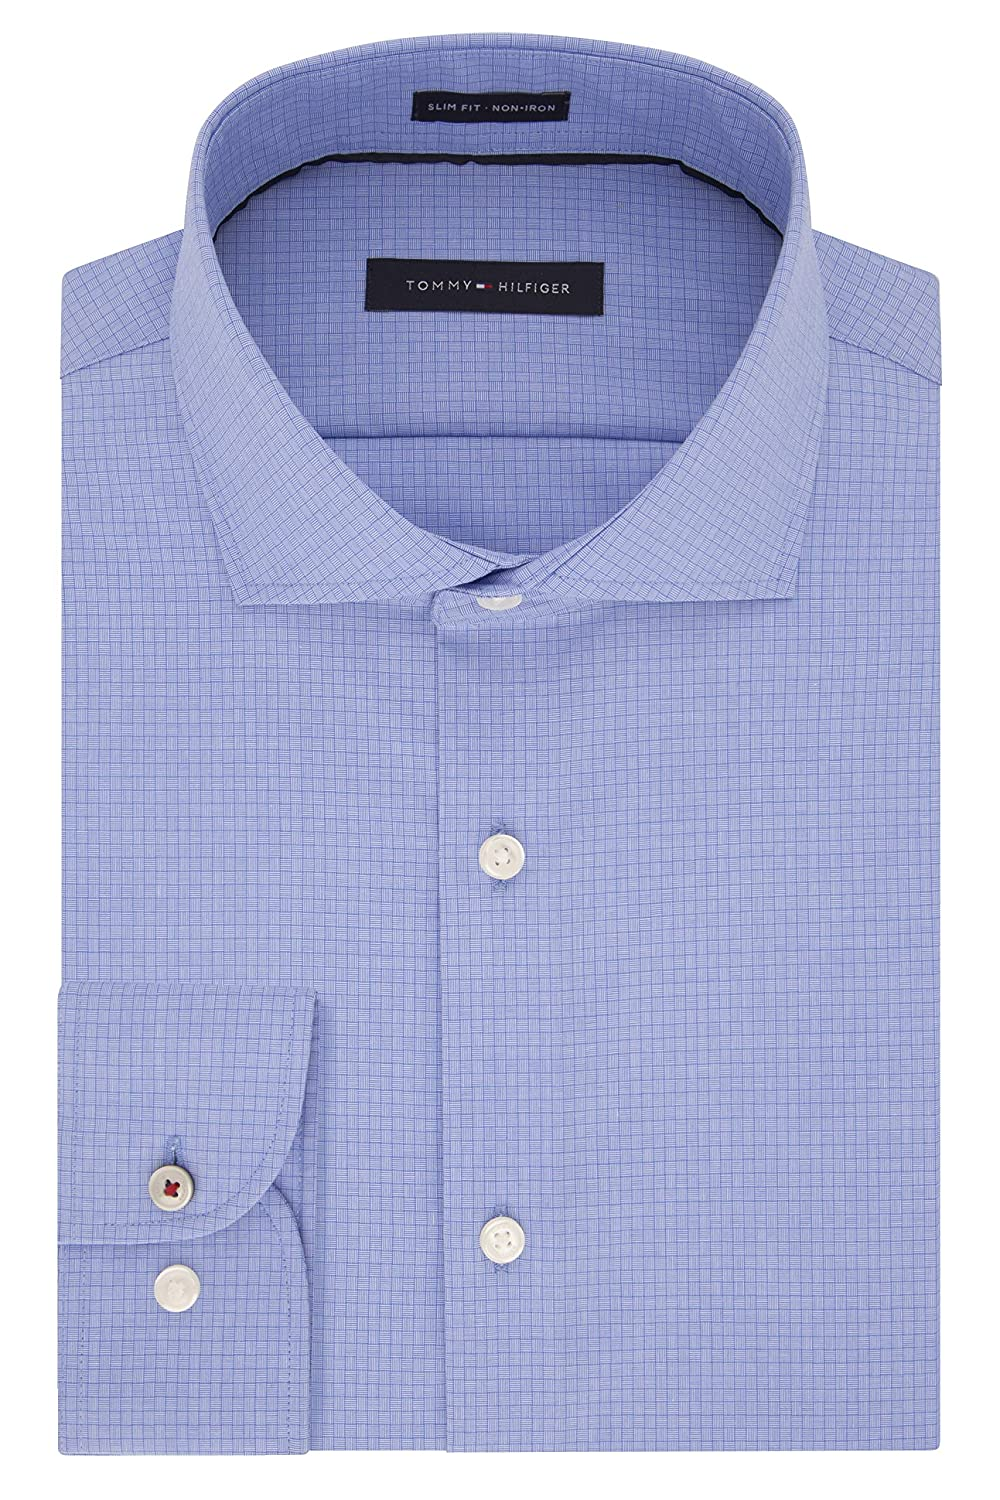 c3e4fd98feb6 Tommy Hilfiger Men s Dress Shirts Non Iron Slim Fit Check at Amazon Men s  Clothing store